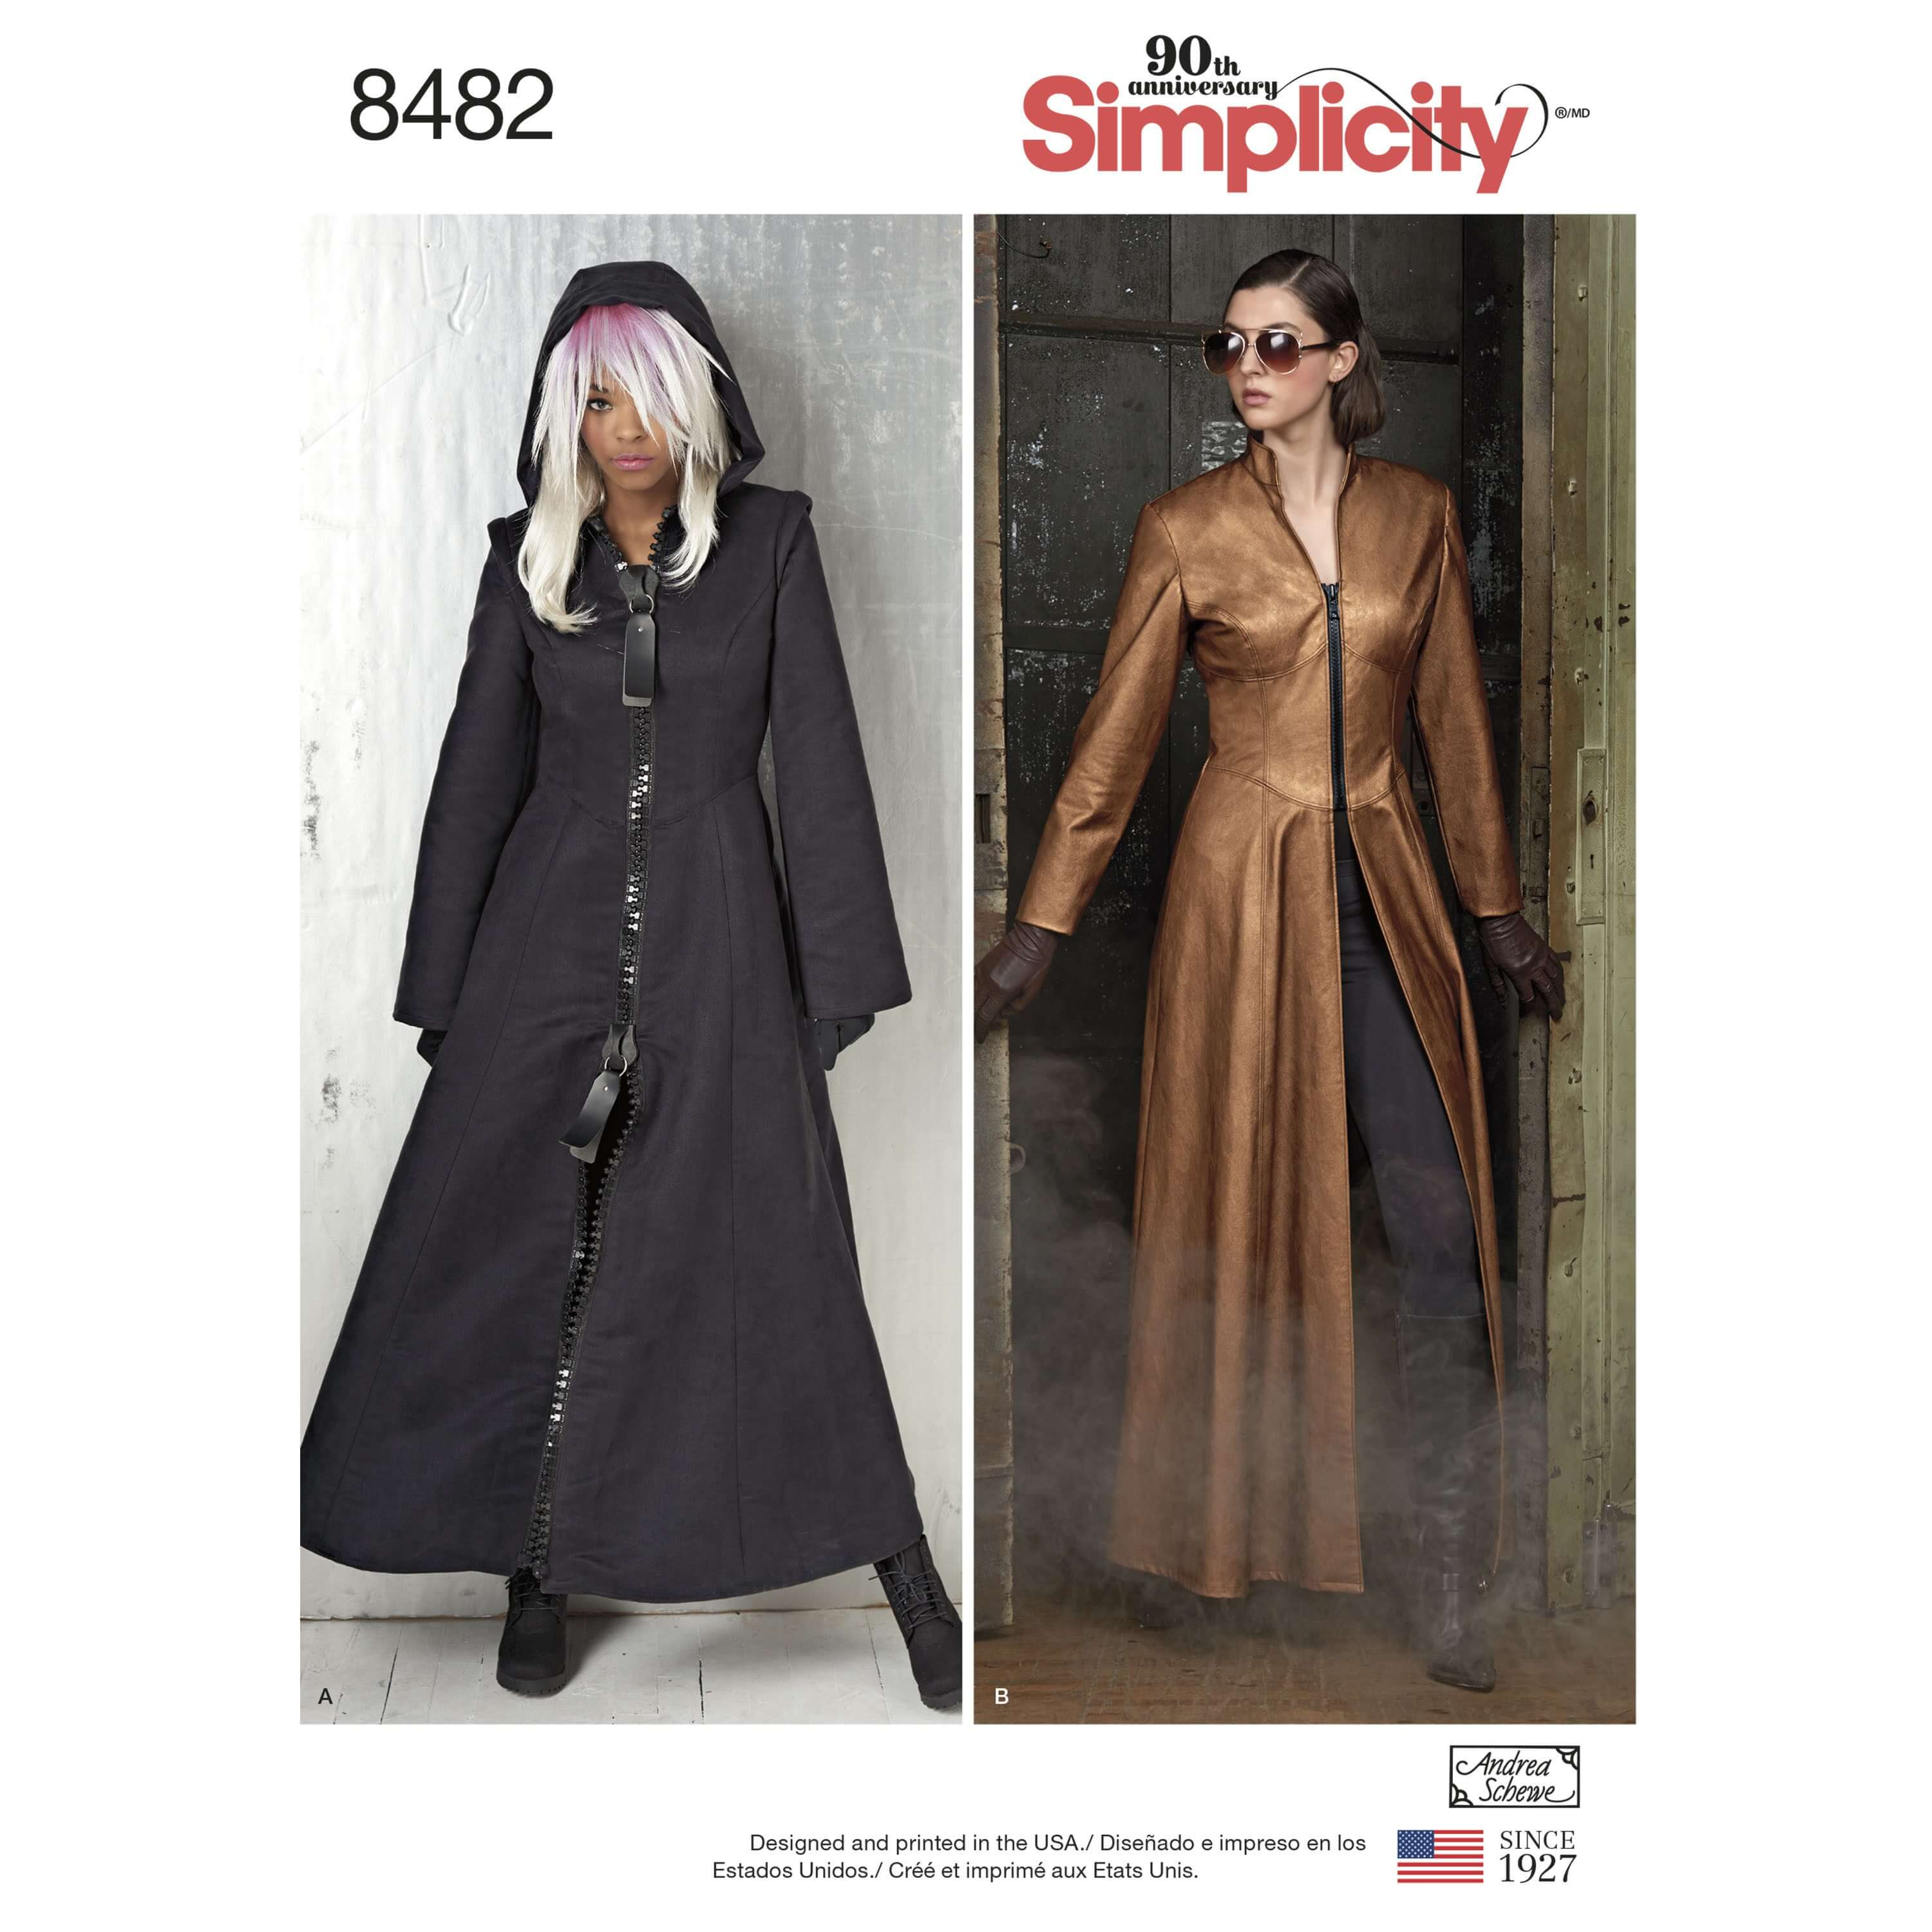 Women's Costume Maxi Coats with Hood Option Simplicity Sewing Pattern 8482